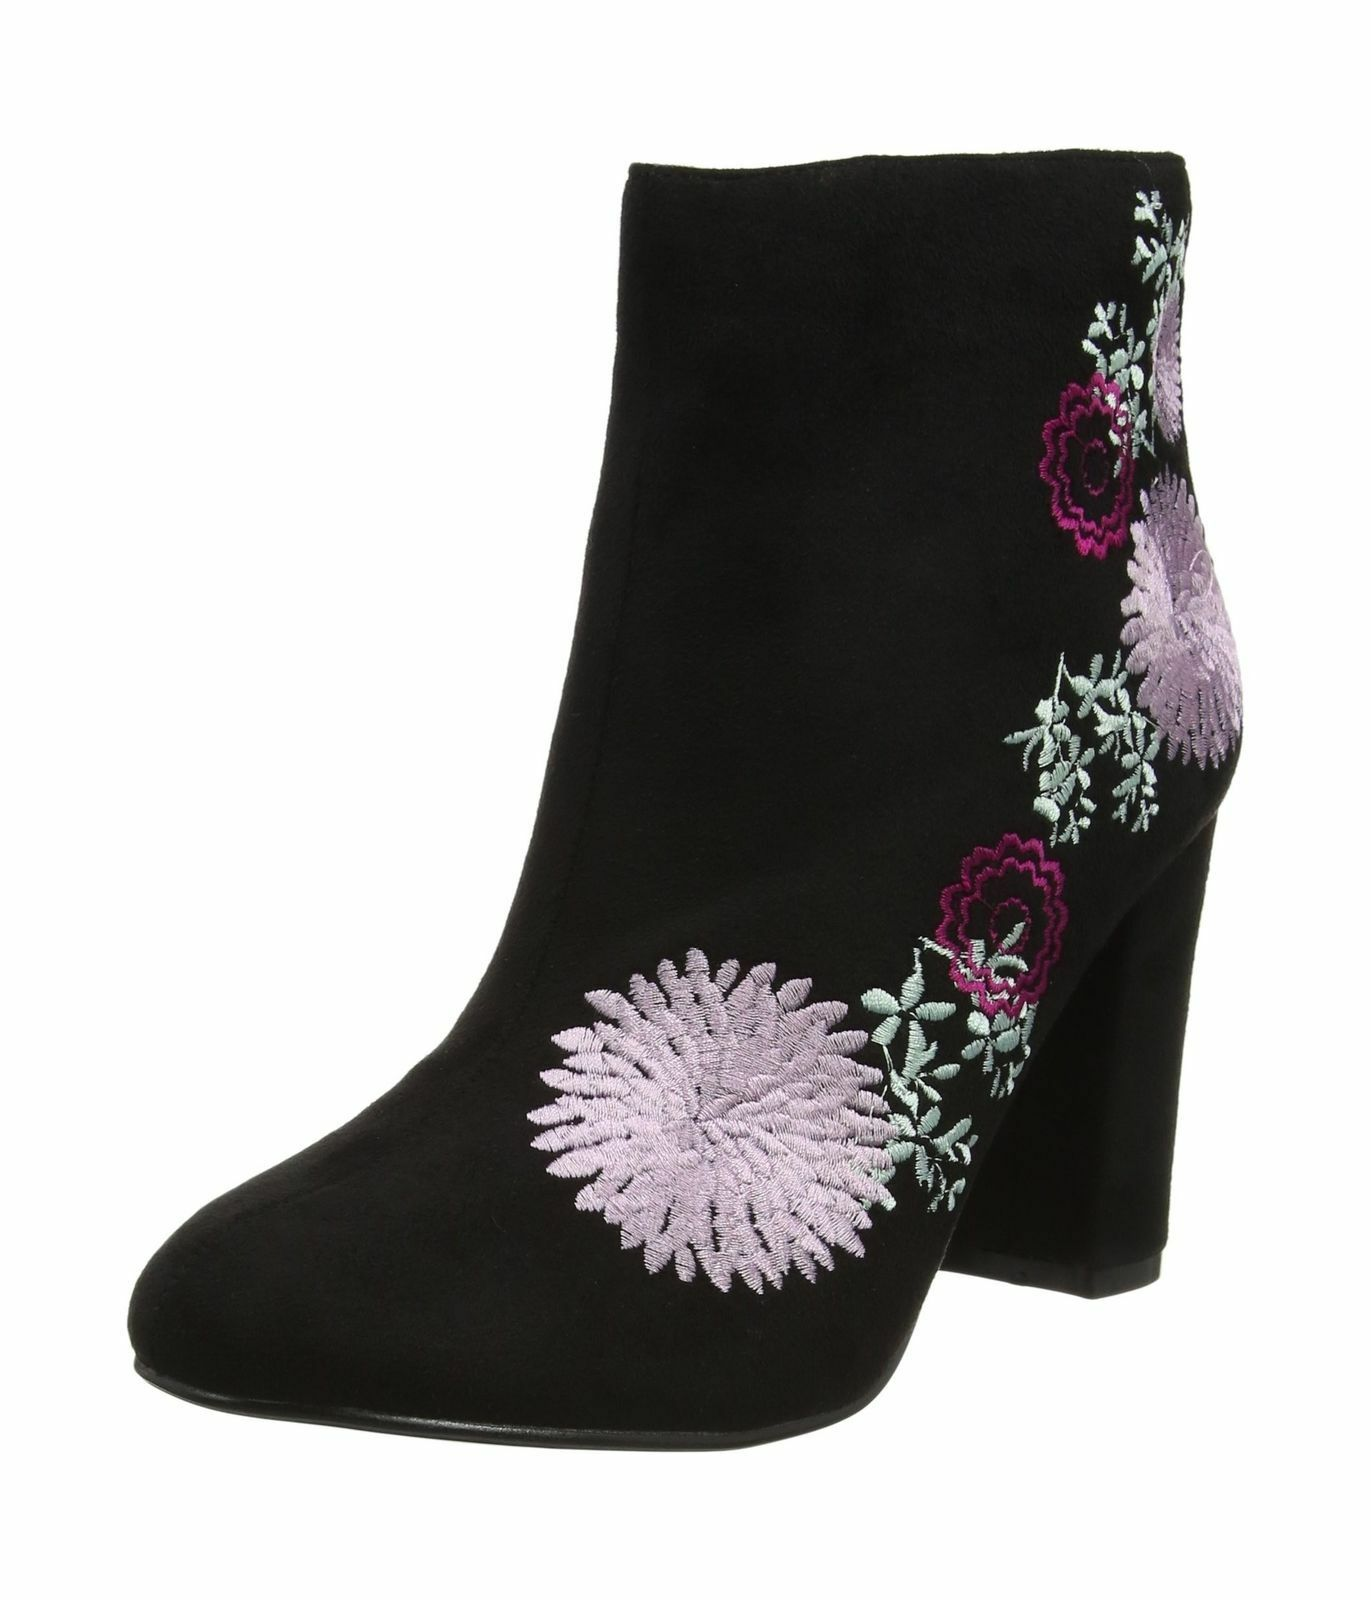 Ladies Black Floral Embroided Dolics FeRlicity Heeled Ankle Boots